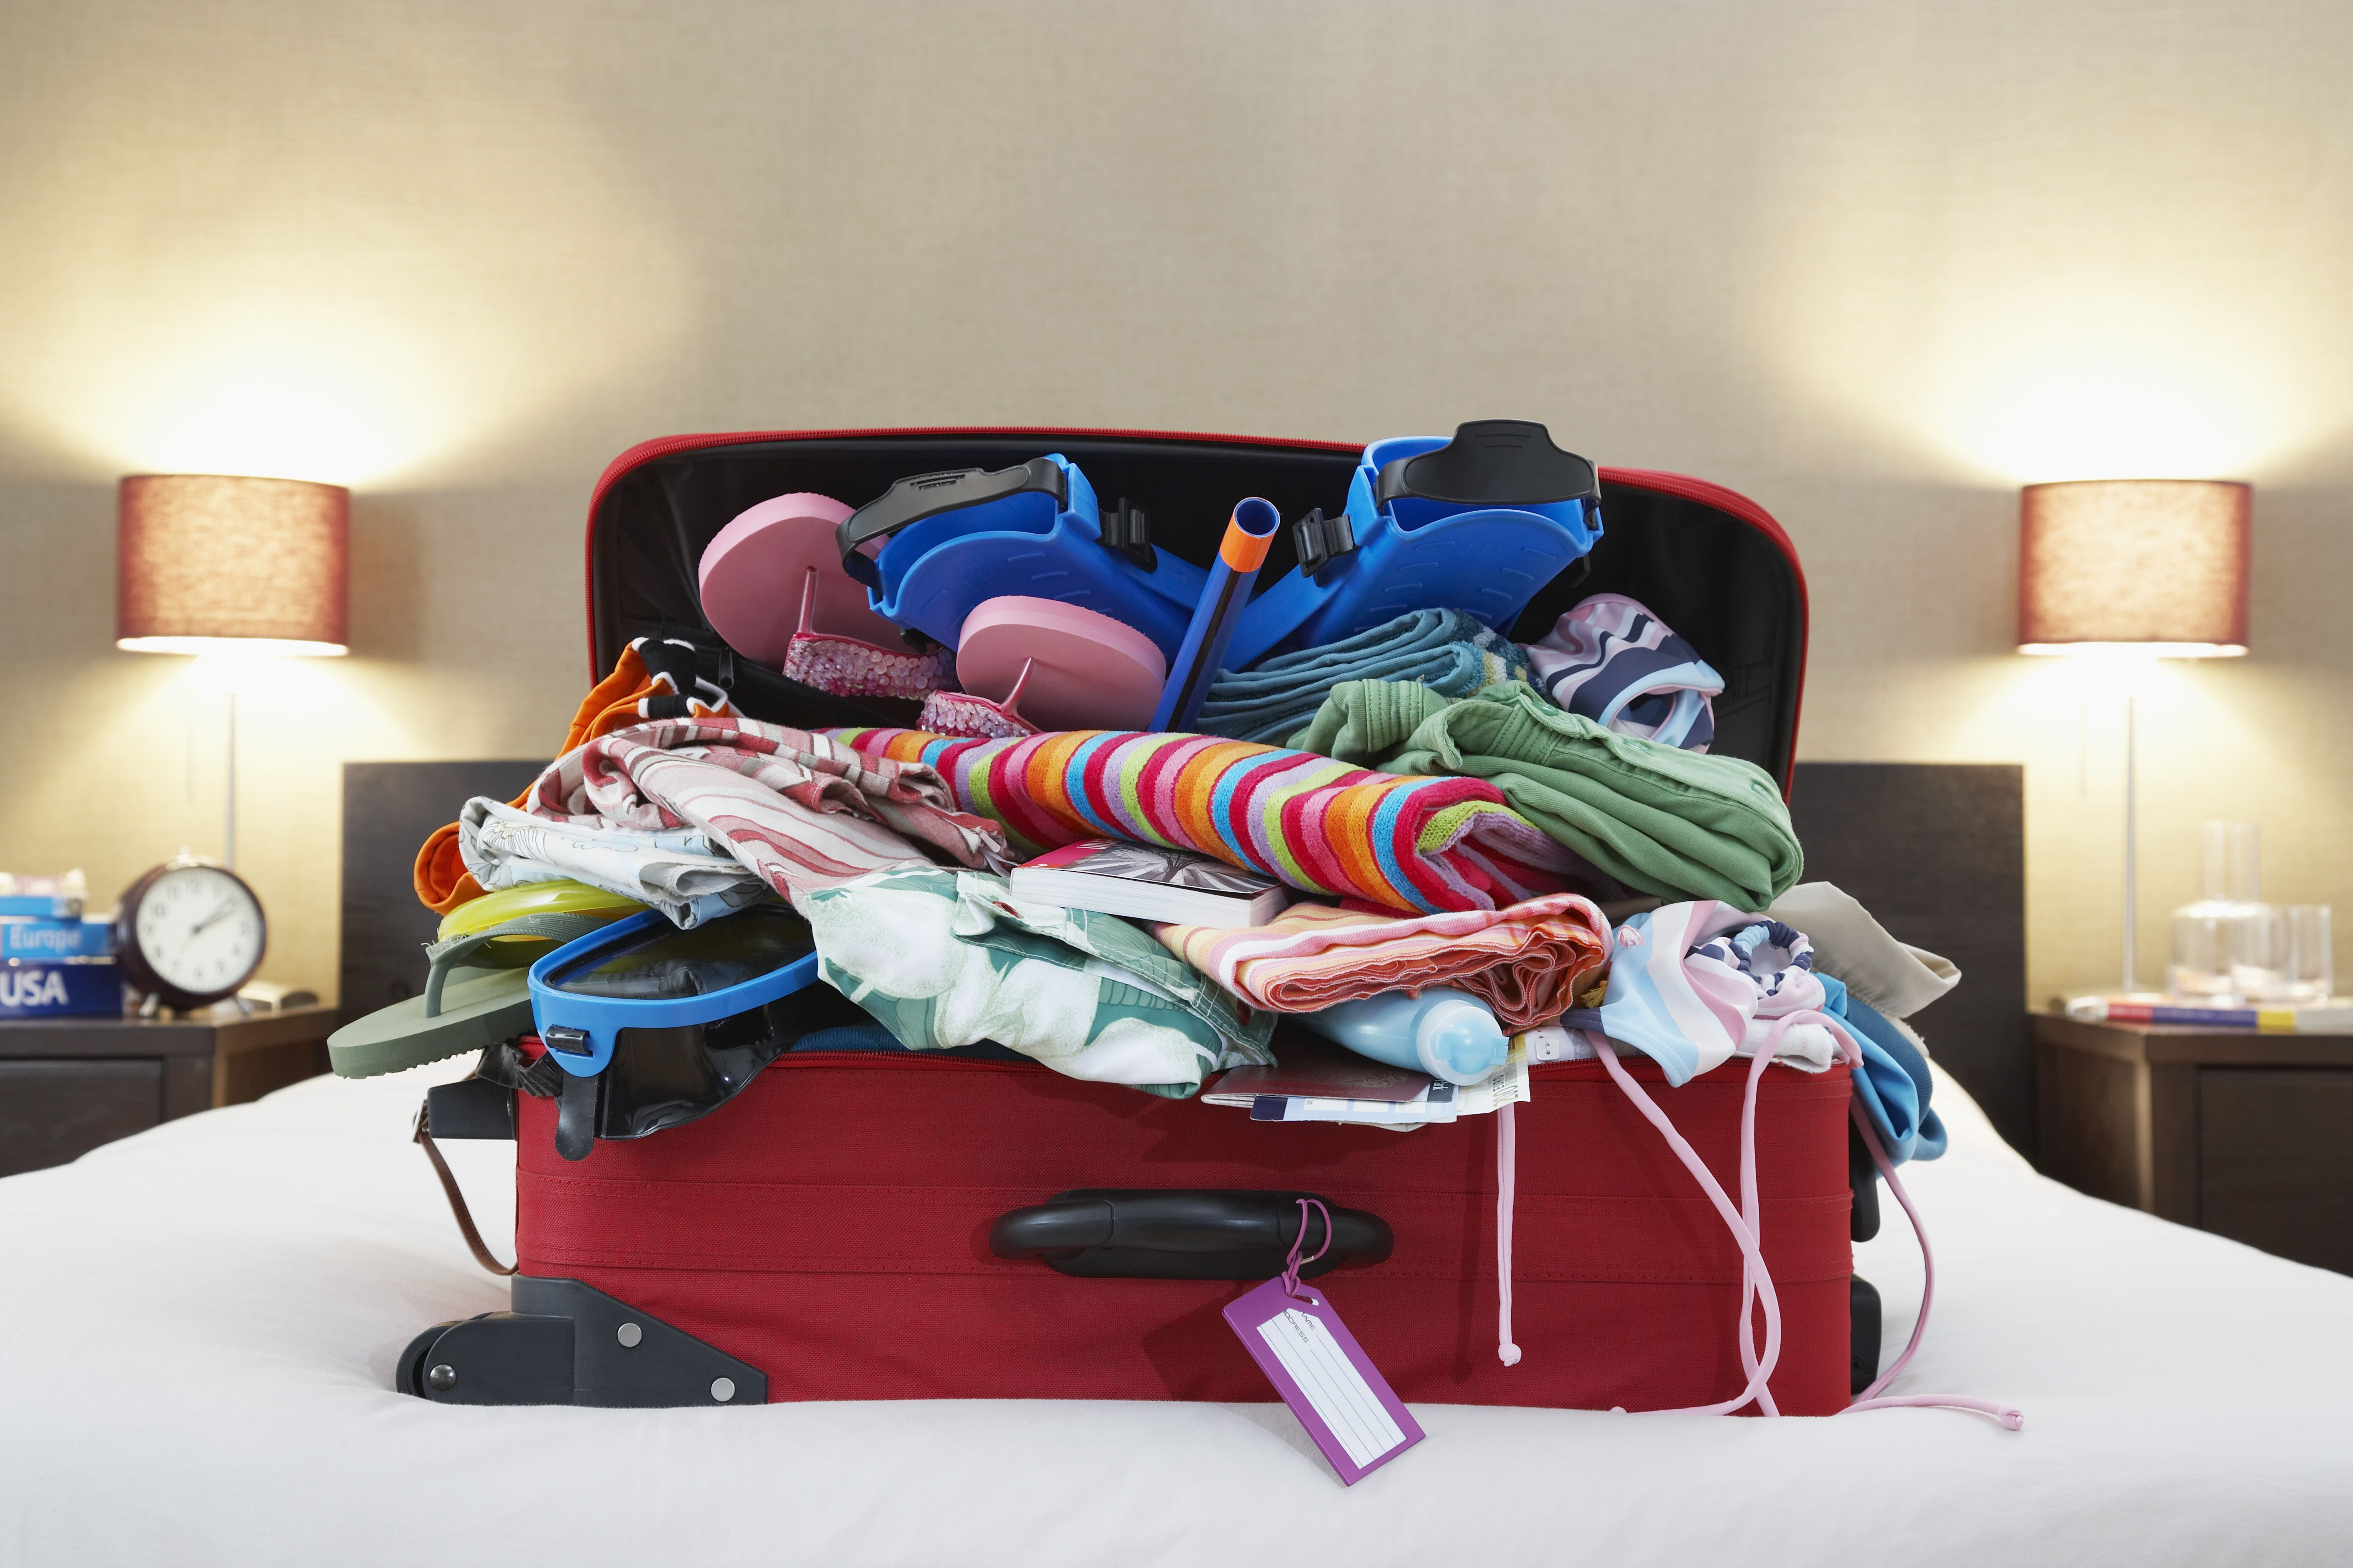 12 Things You Should Never Pack Family Vacation Packing Cruise Packing Tips Vacation Packing